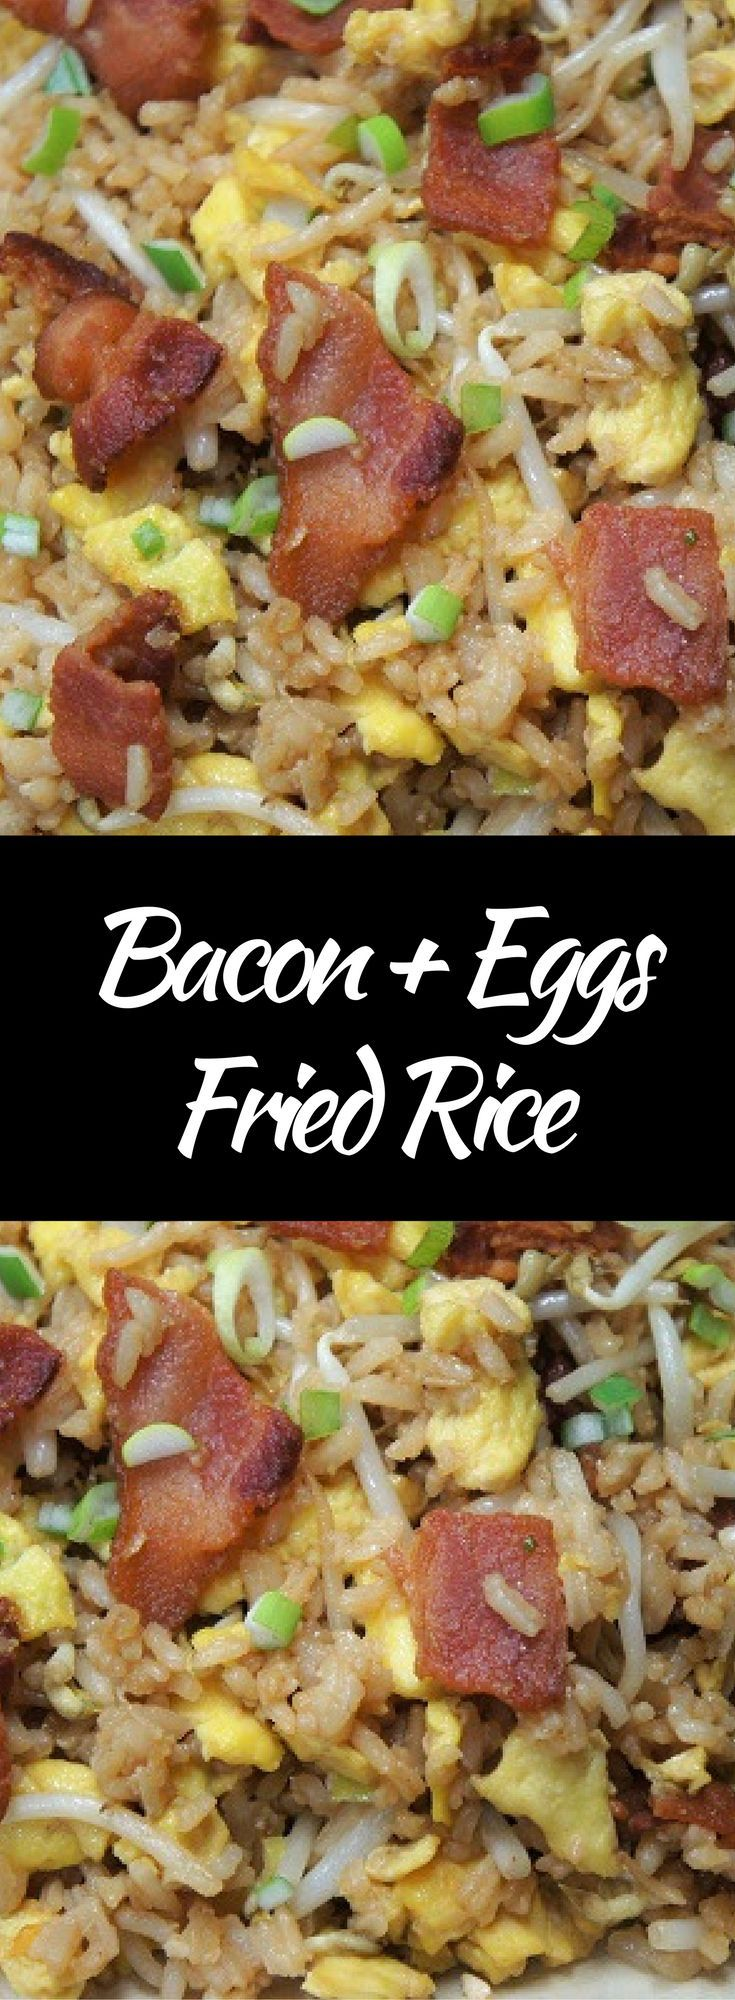 This Bacon and Eggs Fried Rice is quick, easy and affordable, perfect for busy weeknights or cheap eats when money is a little tight. You probably have most of what you need in your pantry and fridge already. Dig deep, I'm sure there's a bottle of soy sauce in there, and that carton of eggs is probably going to expire soon. Use up the rest of the bacon, make some white rice and dinner is done.